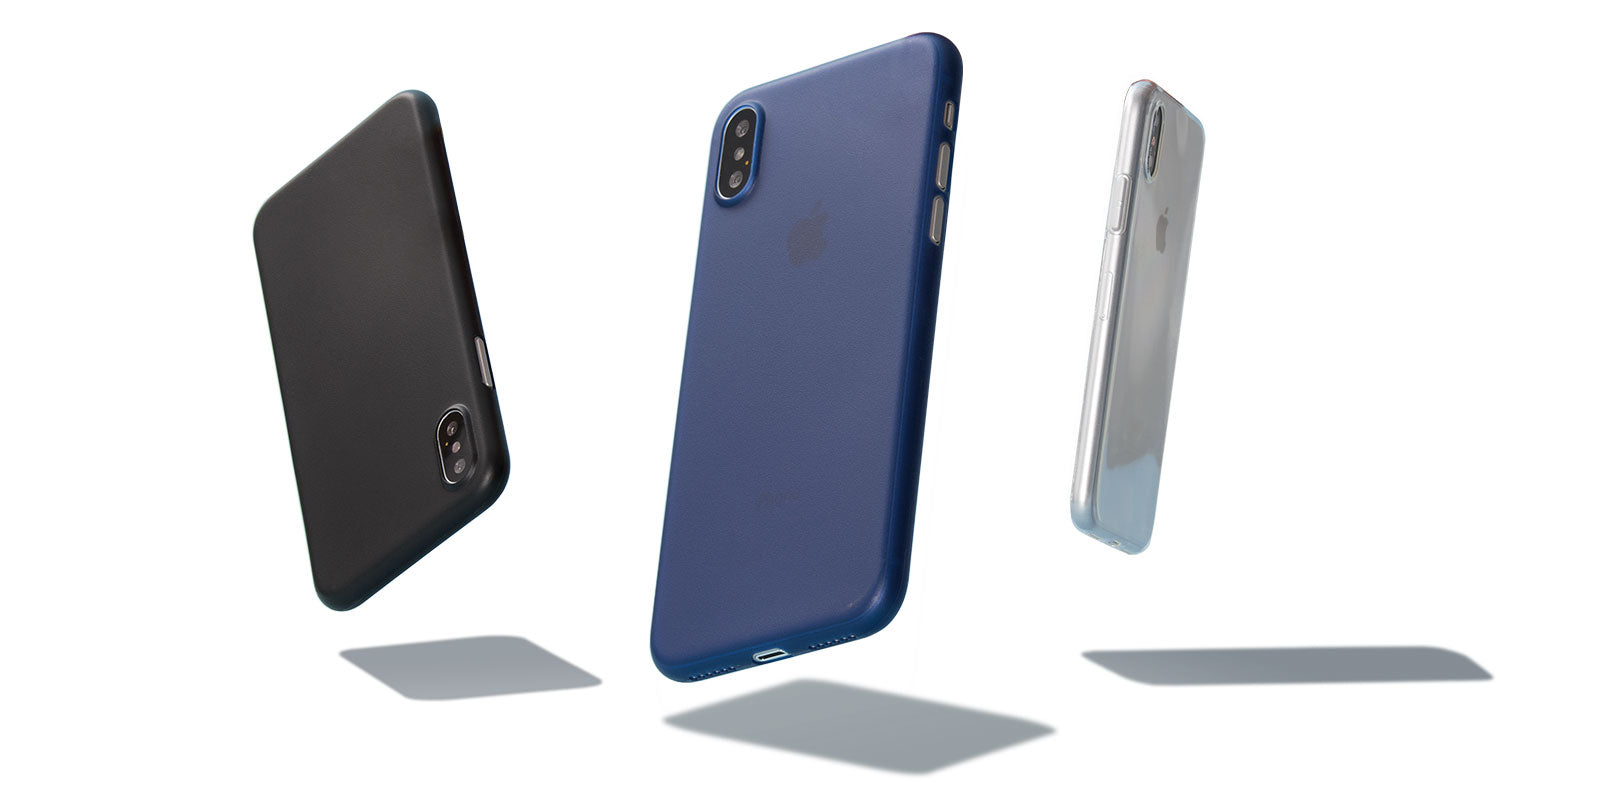 totallee's 3 thin iPhone cases